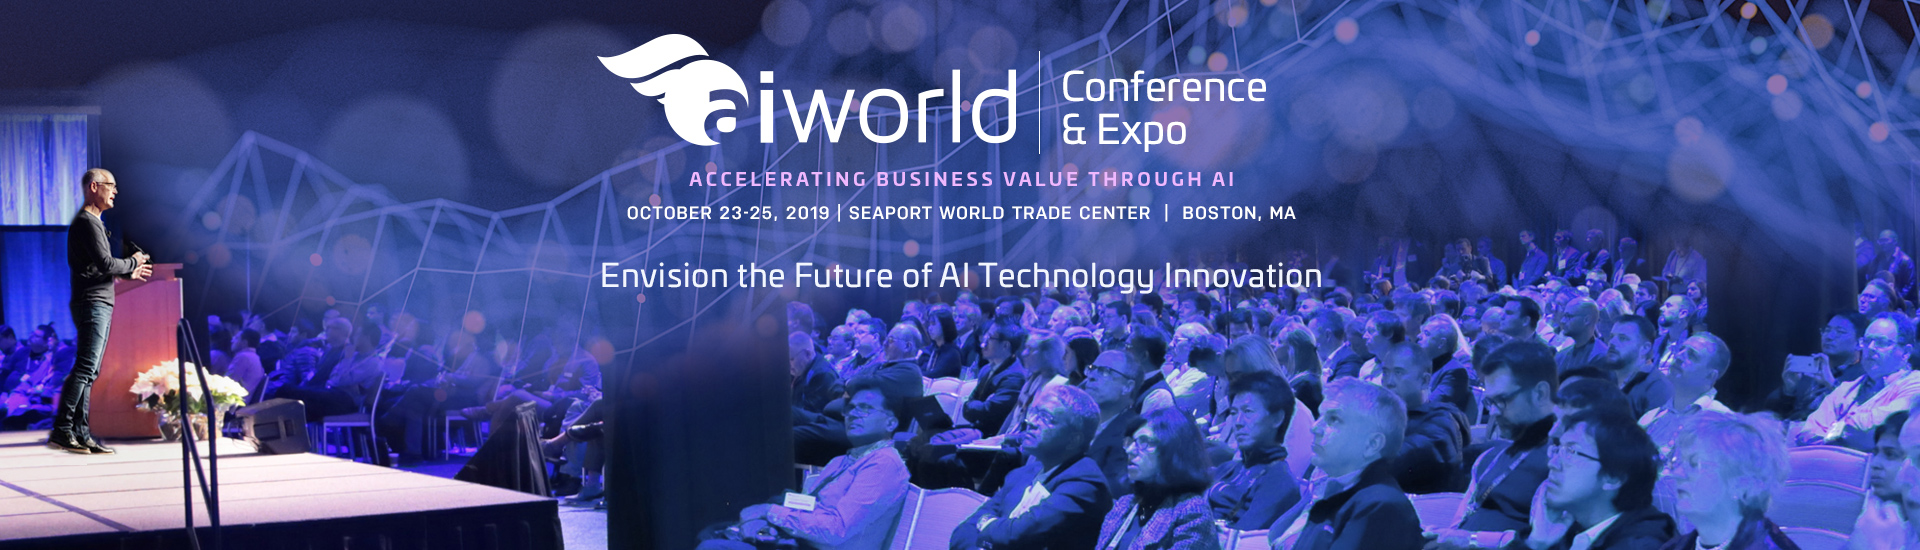 AI World Conference and Expo